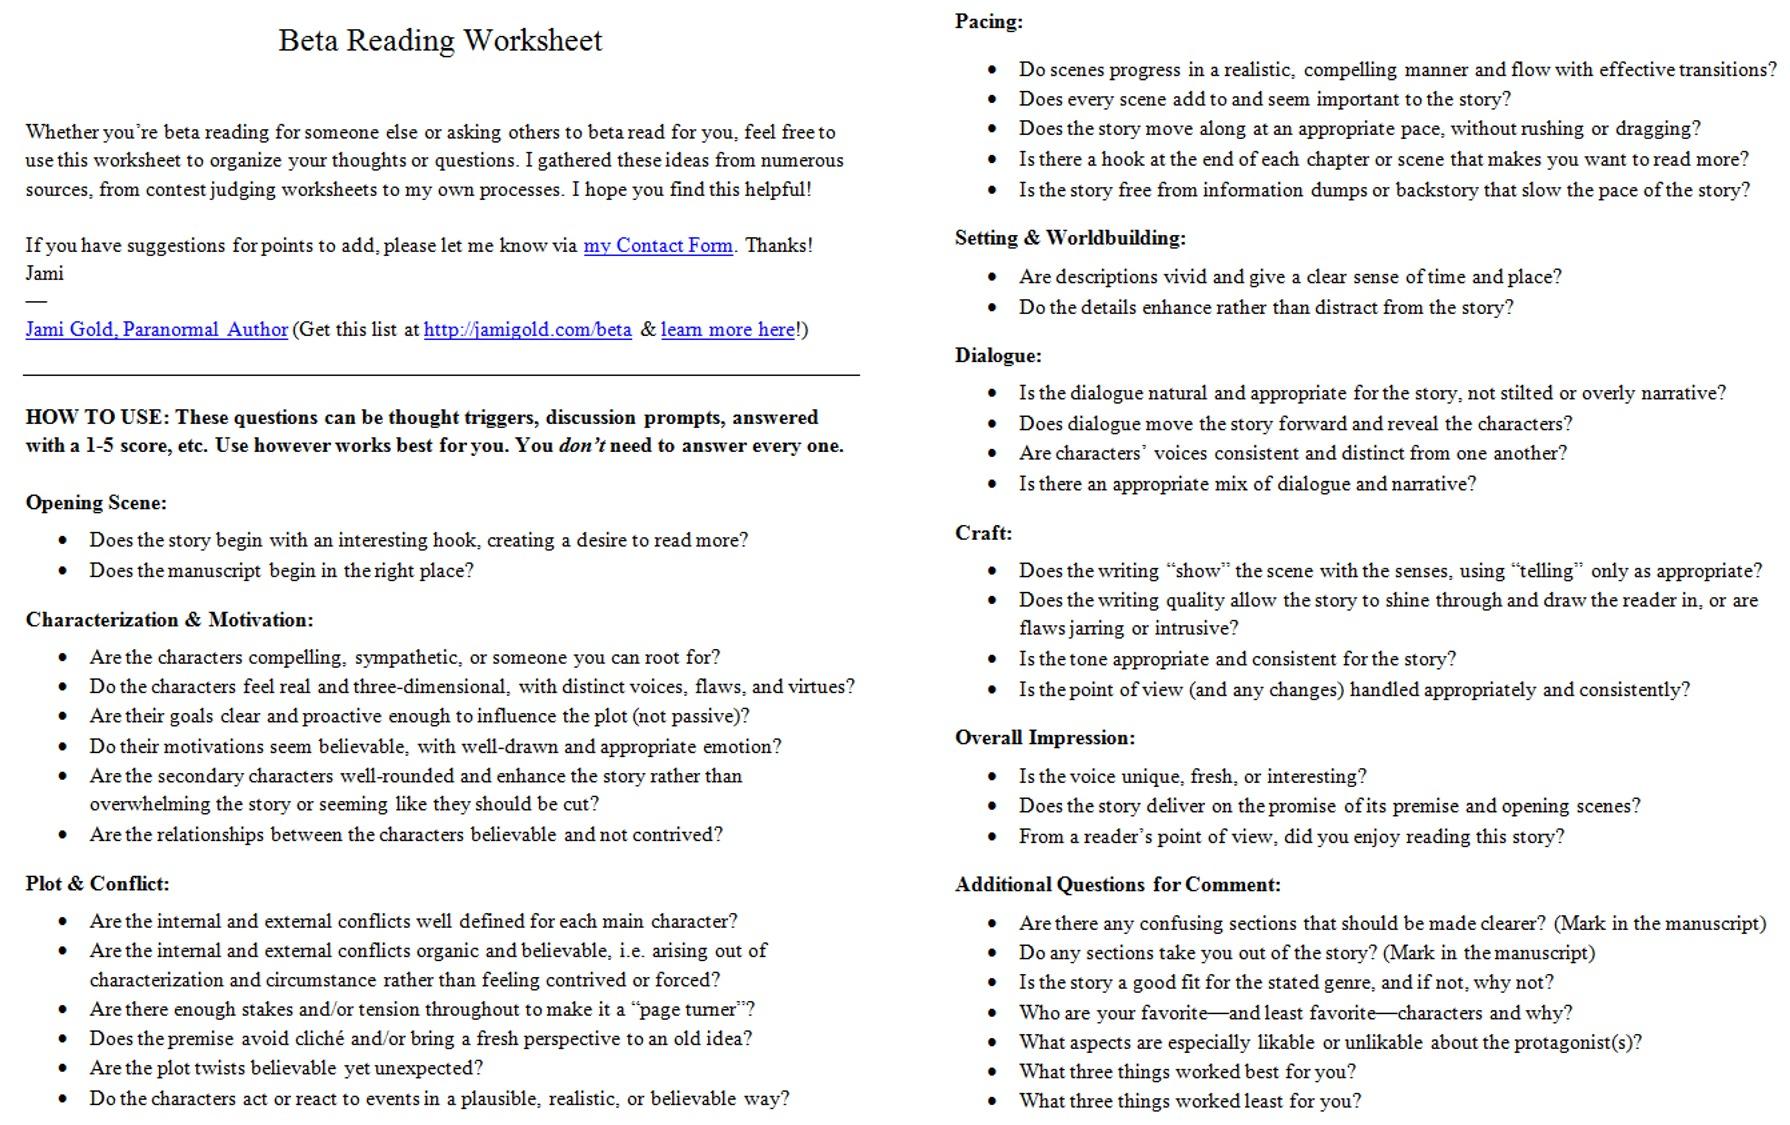 Aldiablosus  Picturesque Worksheets For Writers  Jami Gold Paranormal Author With Glamorous Screen Shot Of The Twopage Beta Reading Worksheet With Divine Finding The Percent Of A Number Worksheet Also Physics Measurement Worksheet In Addition Make Math Worksheets And Qualified Dividends And Capital Gain Worksheet As Well As Numbers  To  Worksheets Additionally Pronoun Verb Agreement Worksheet From Jamigoldcom With Aldiablosus  Glamorous Worksheets For Writers  Jami Gold Paranormal Author With Divine Screen Shot Of The Twopage Beta Reading Worksheet And Picturesque Finding The Percent Of A Number Worksheet Also Physics Measurement Worksheet In Addition Make Math Worksheets From Jamigoldcom